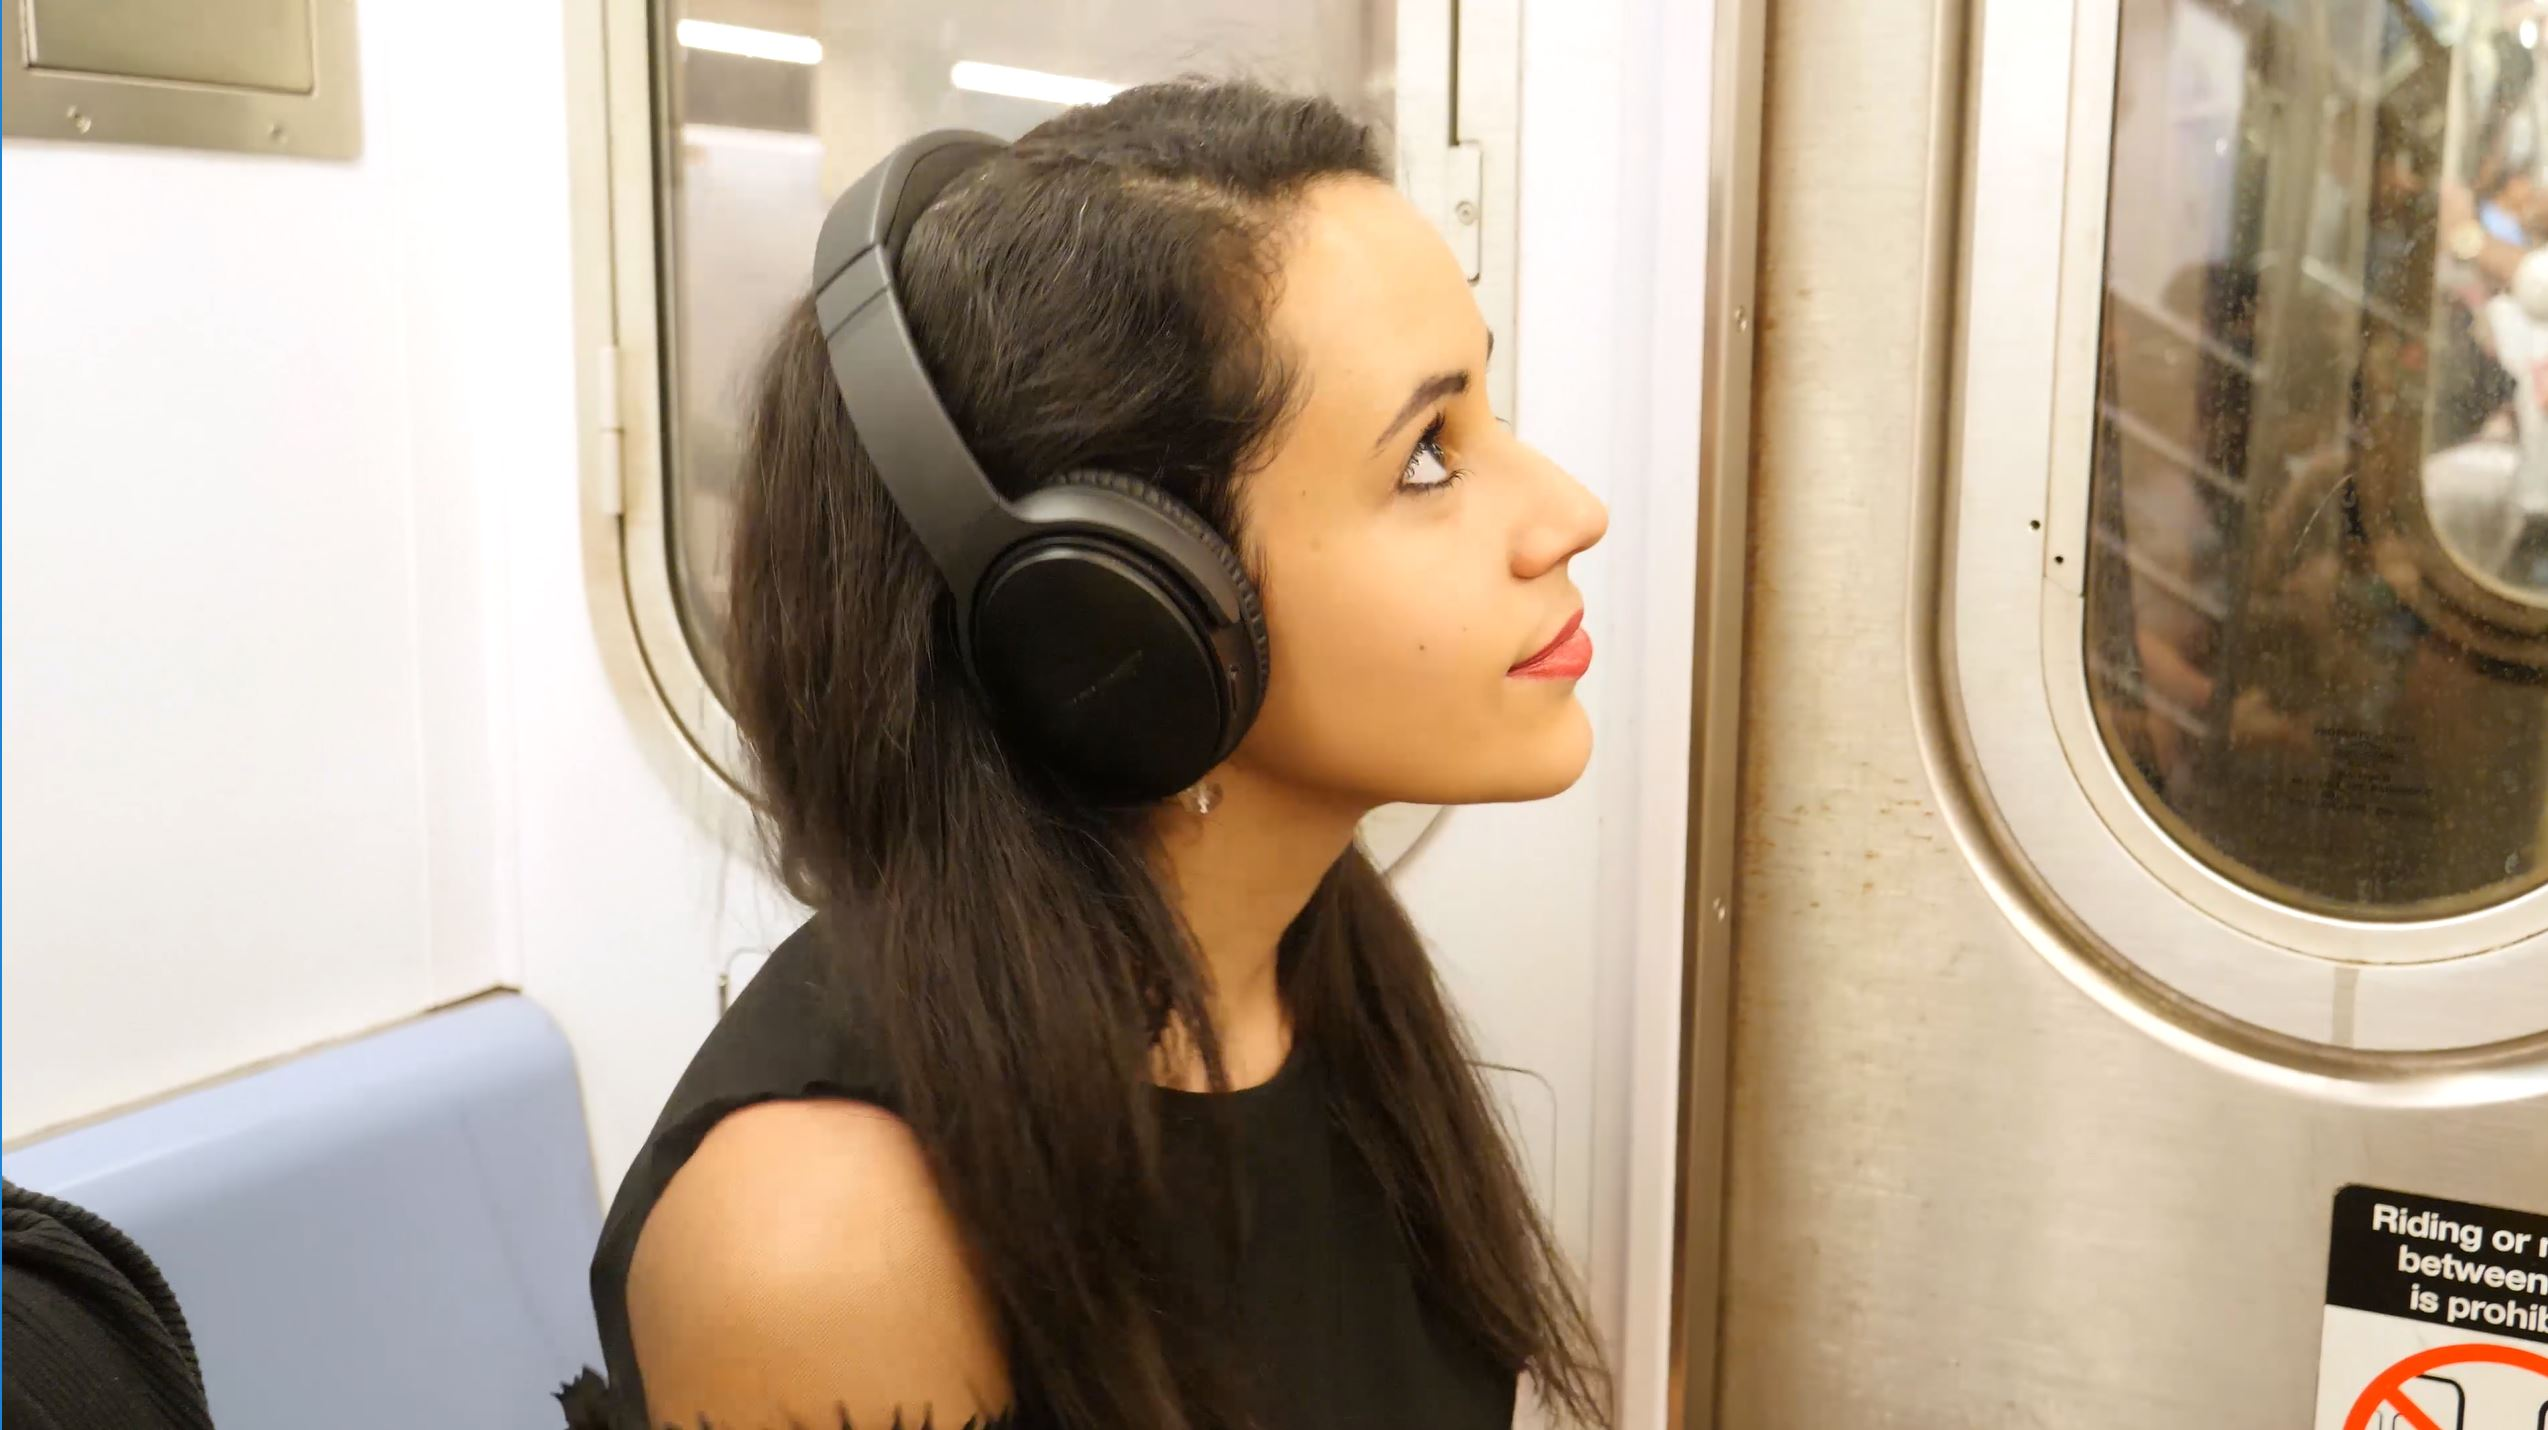 25 Things You Need to Know About the NYC Subway headphones and music